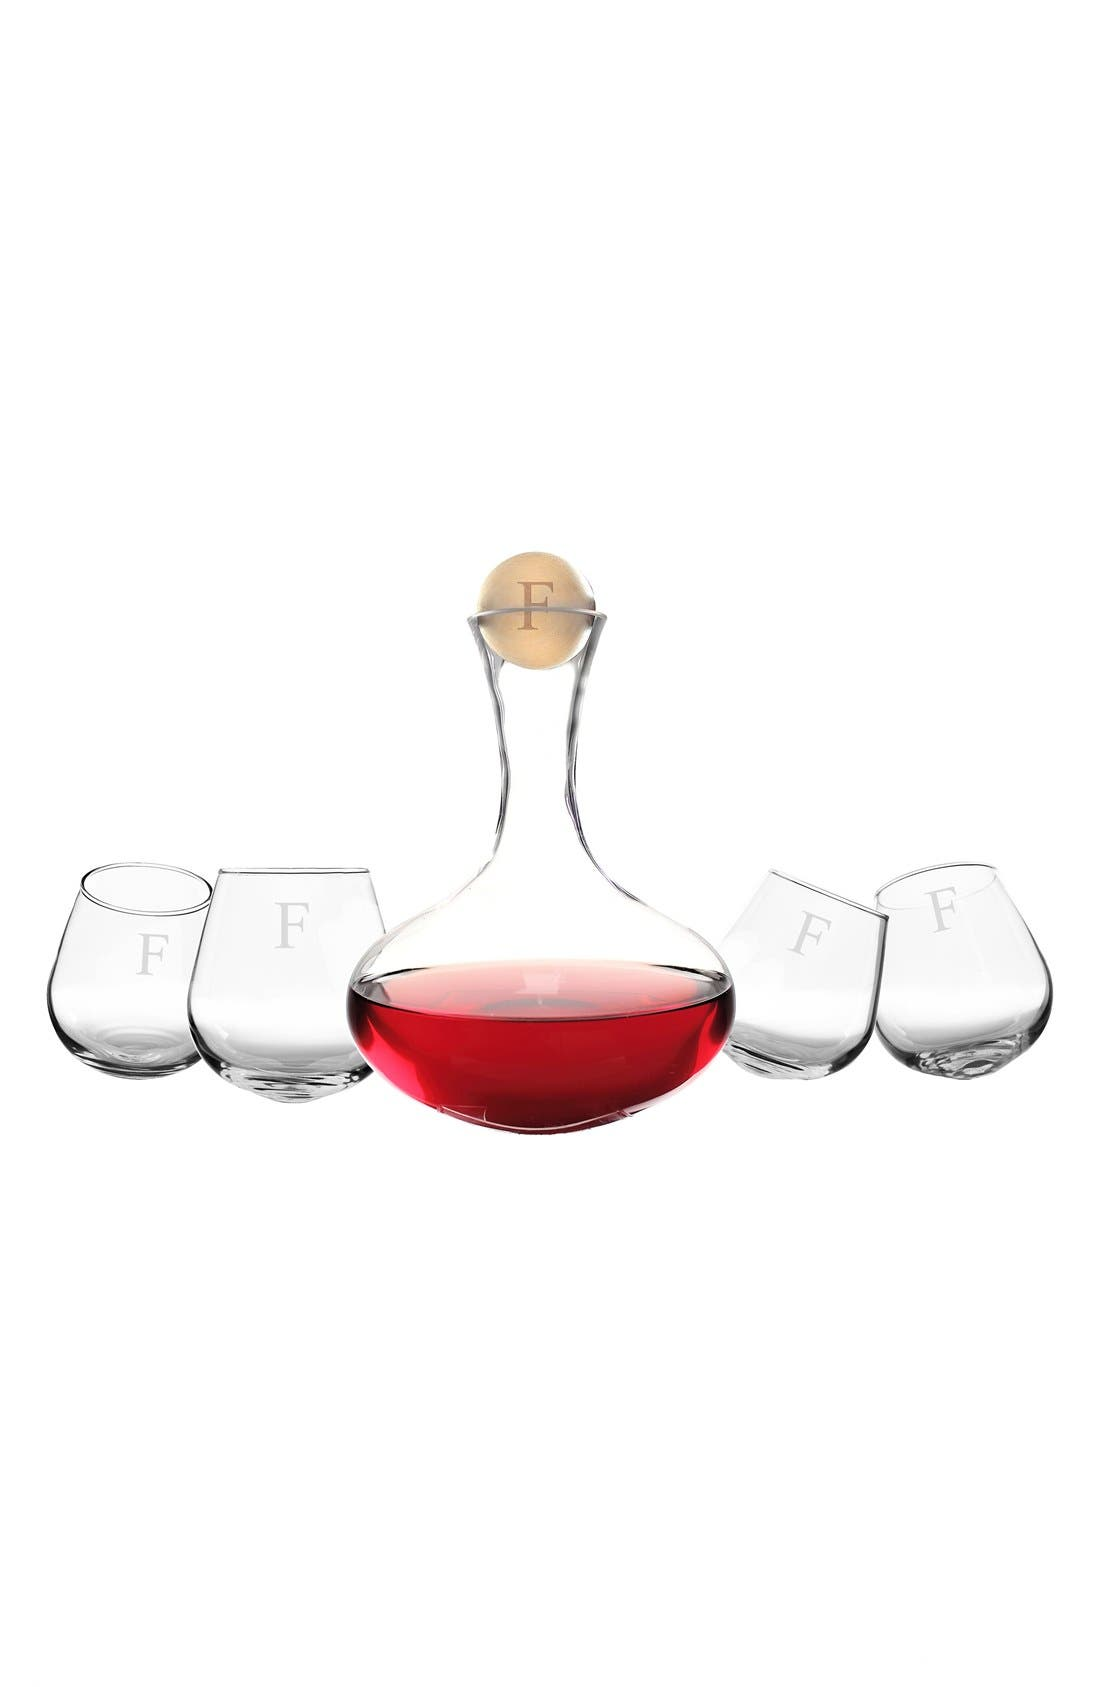 Alternate Image 1 Selected - Cathy's Concepts 'Tipsy' Monogram Wine Decanter & Stemless Glasses (Set of 5)